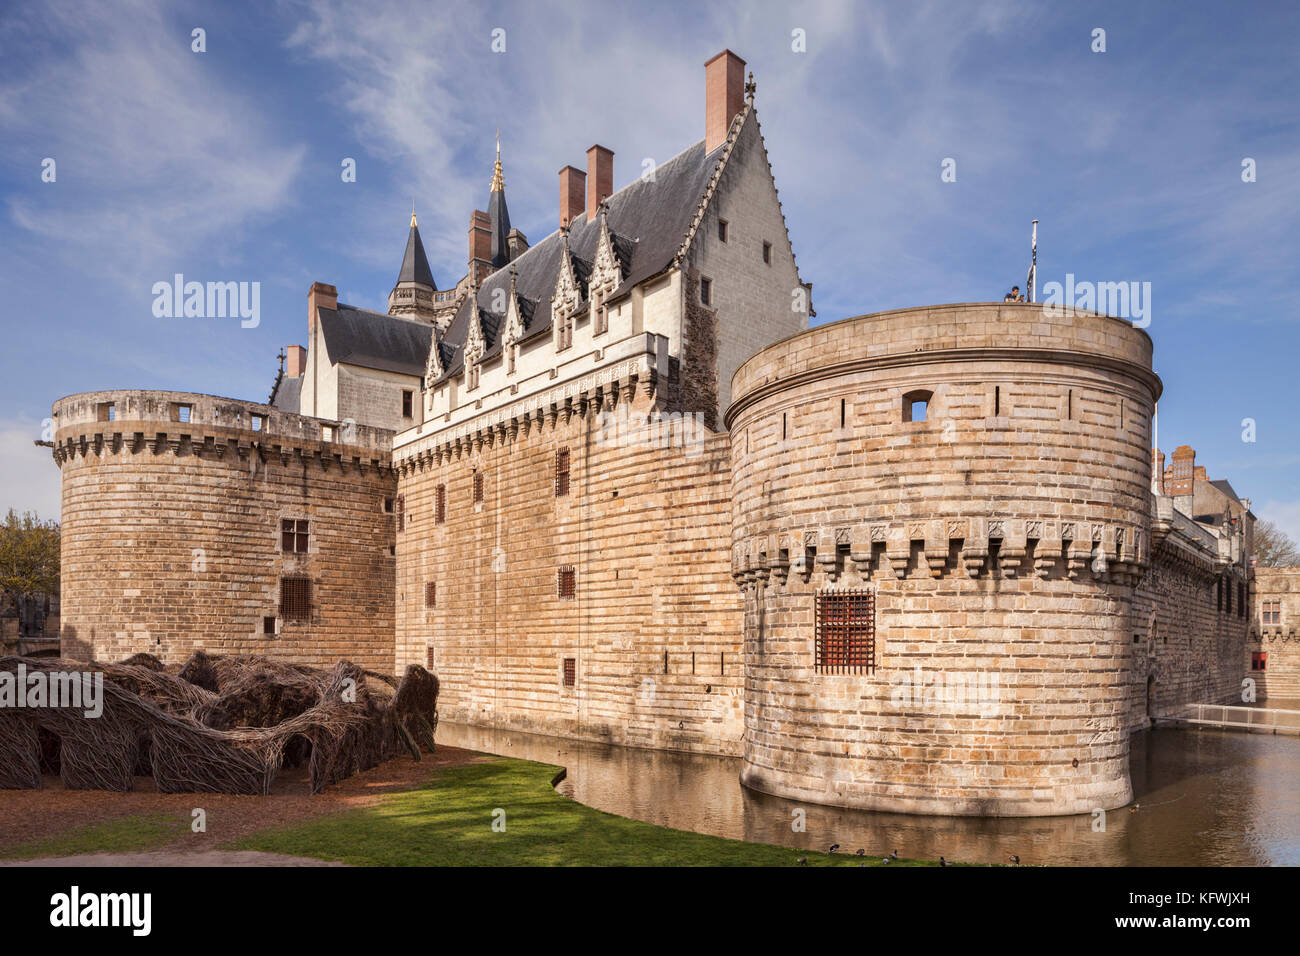 Chateau of the Dukes of Brittany, Nantes, Loire Atlantique, France. Stock Photo